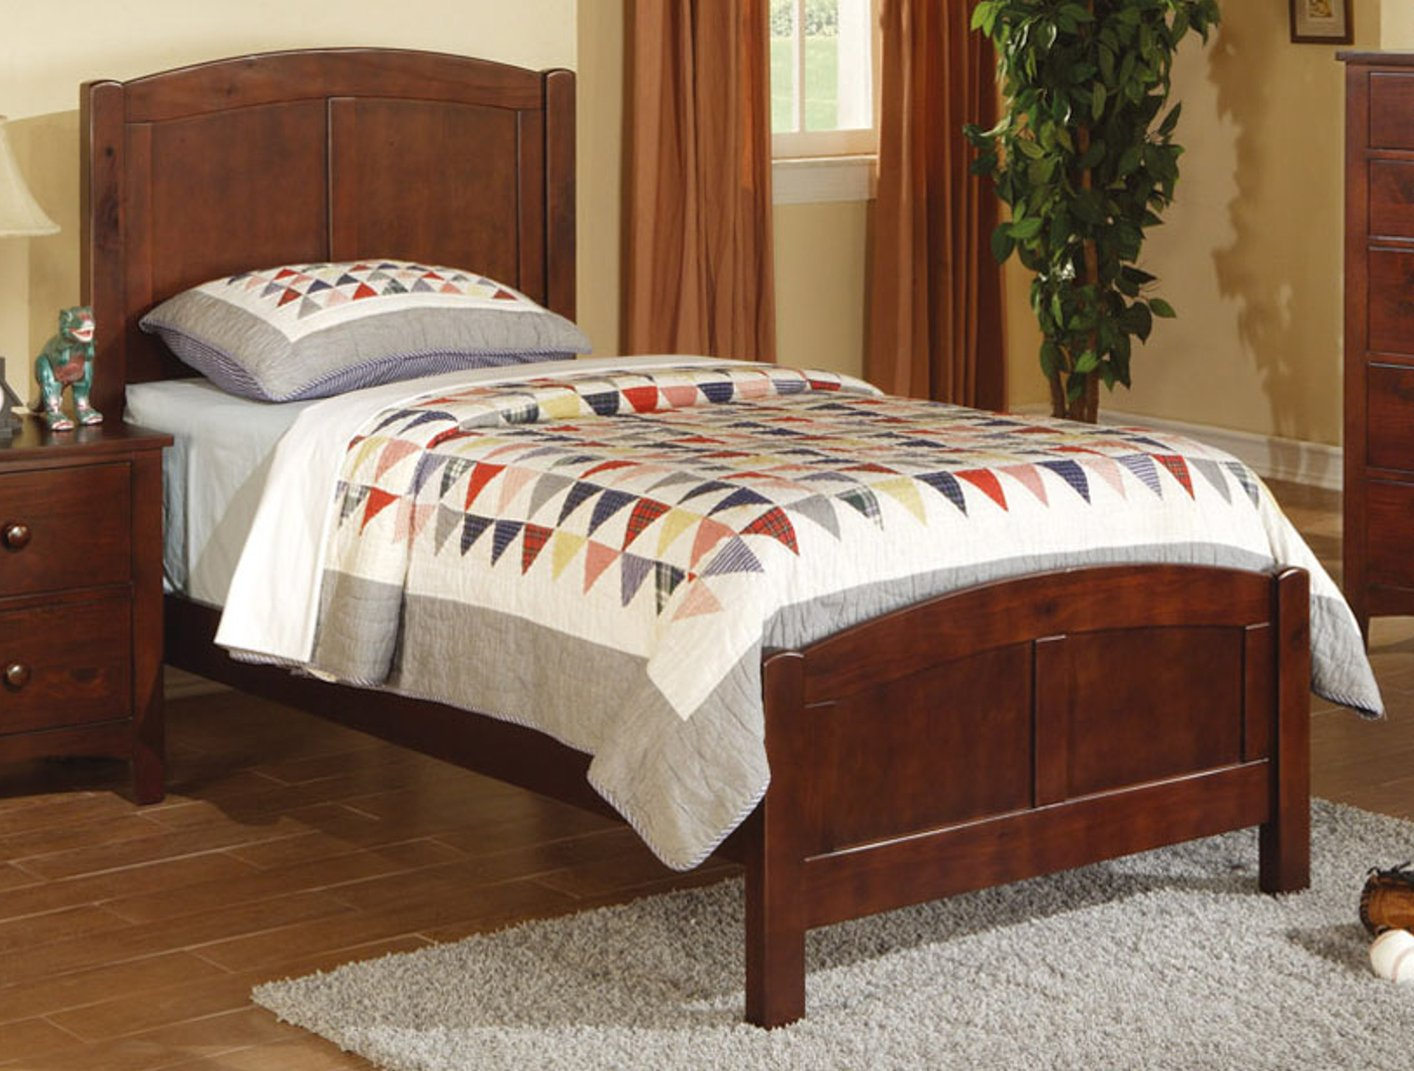 brown wood twin size bed stealasofa furniture outlet